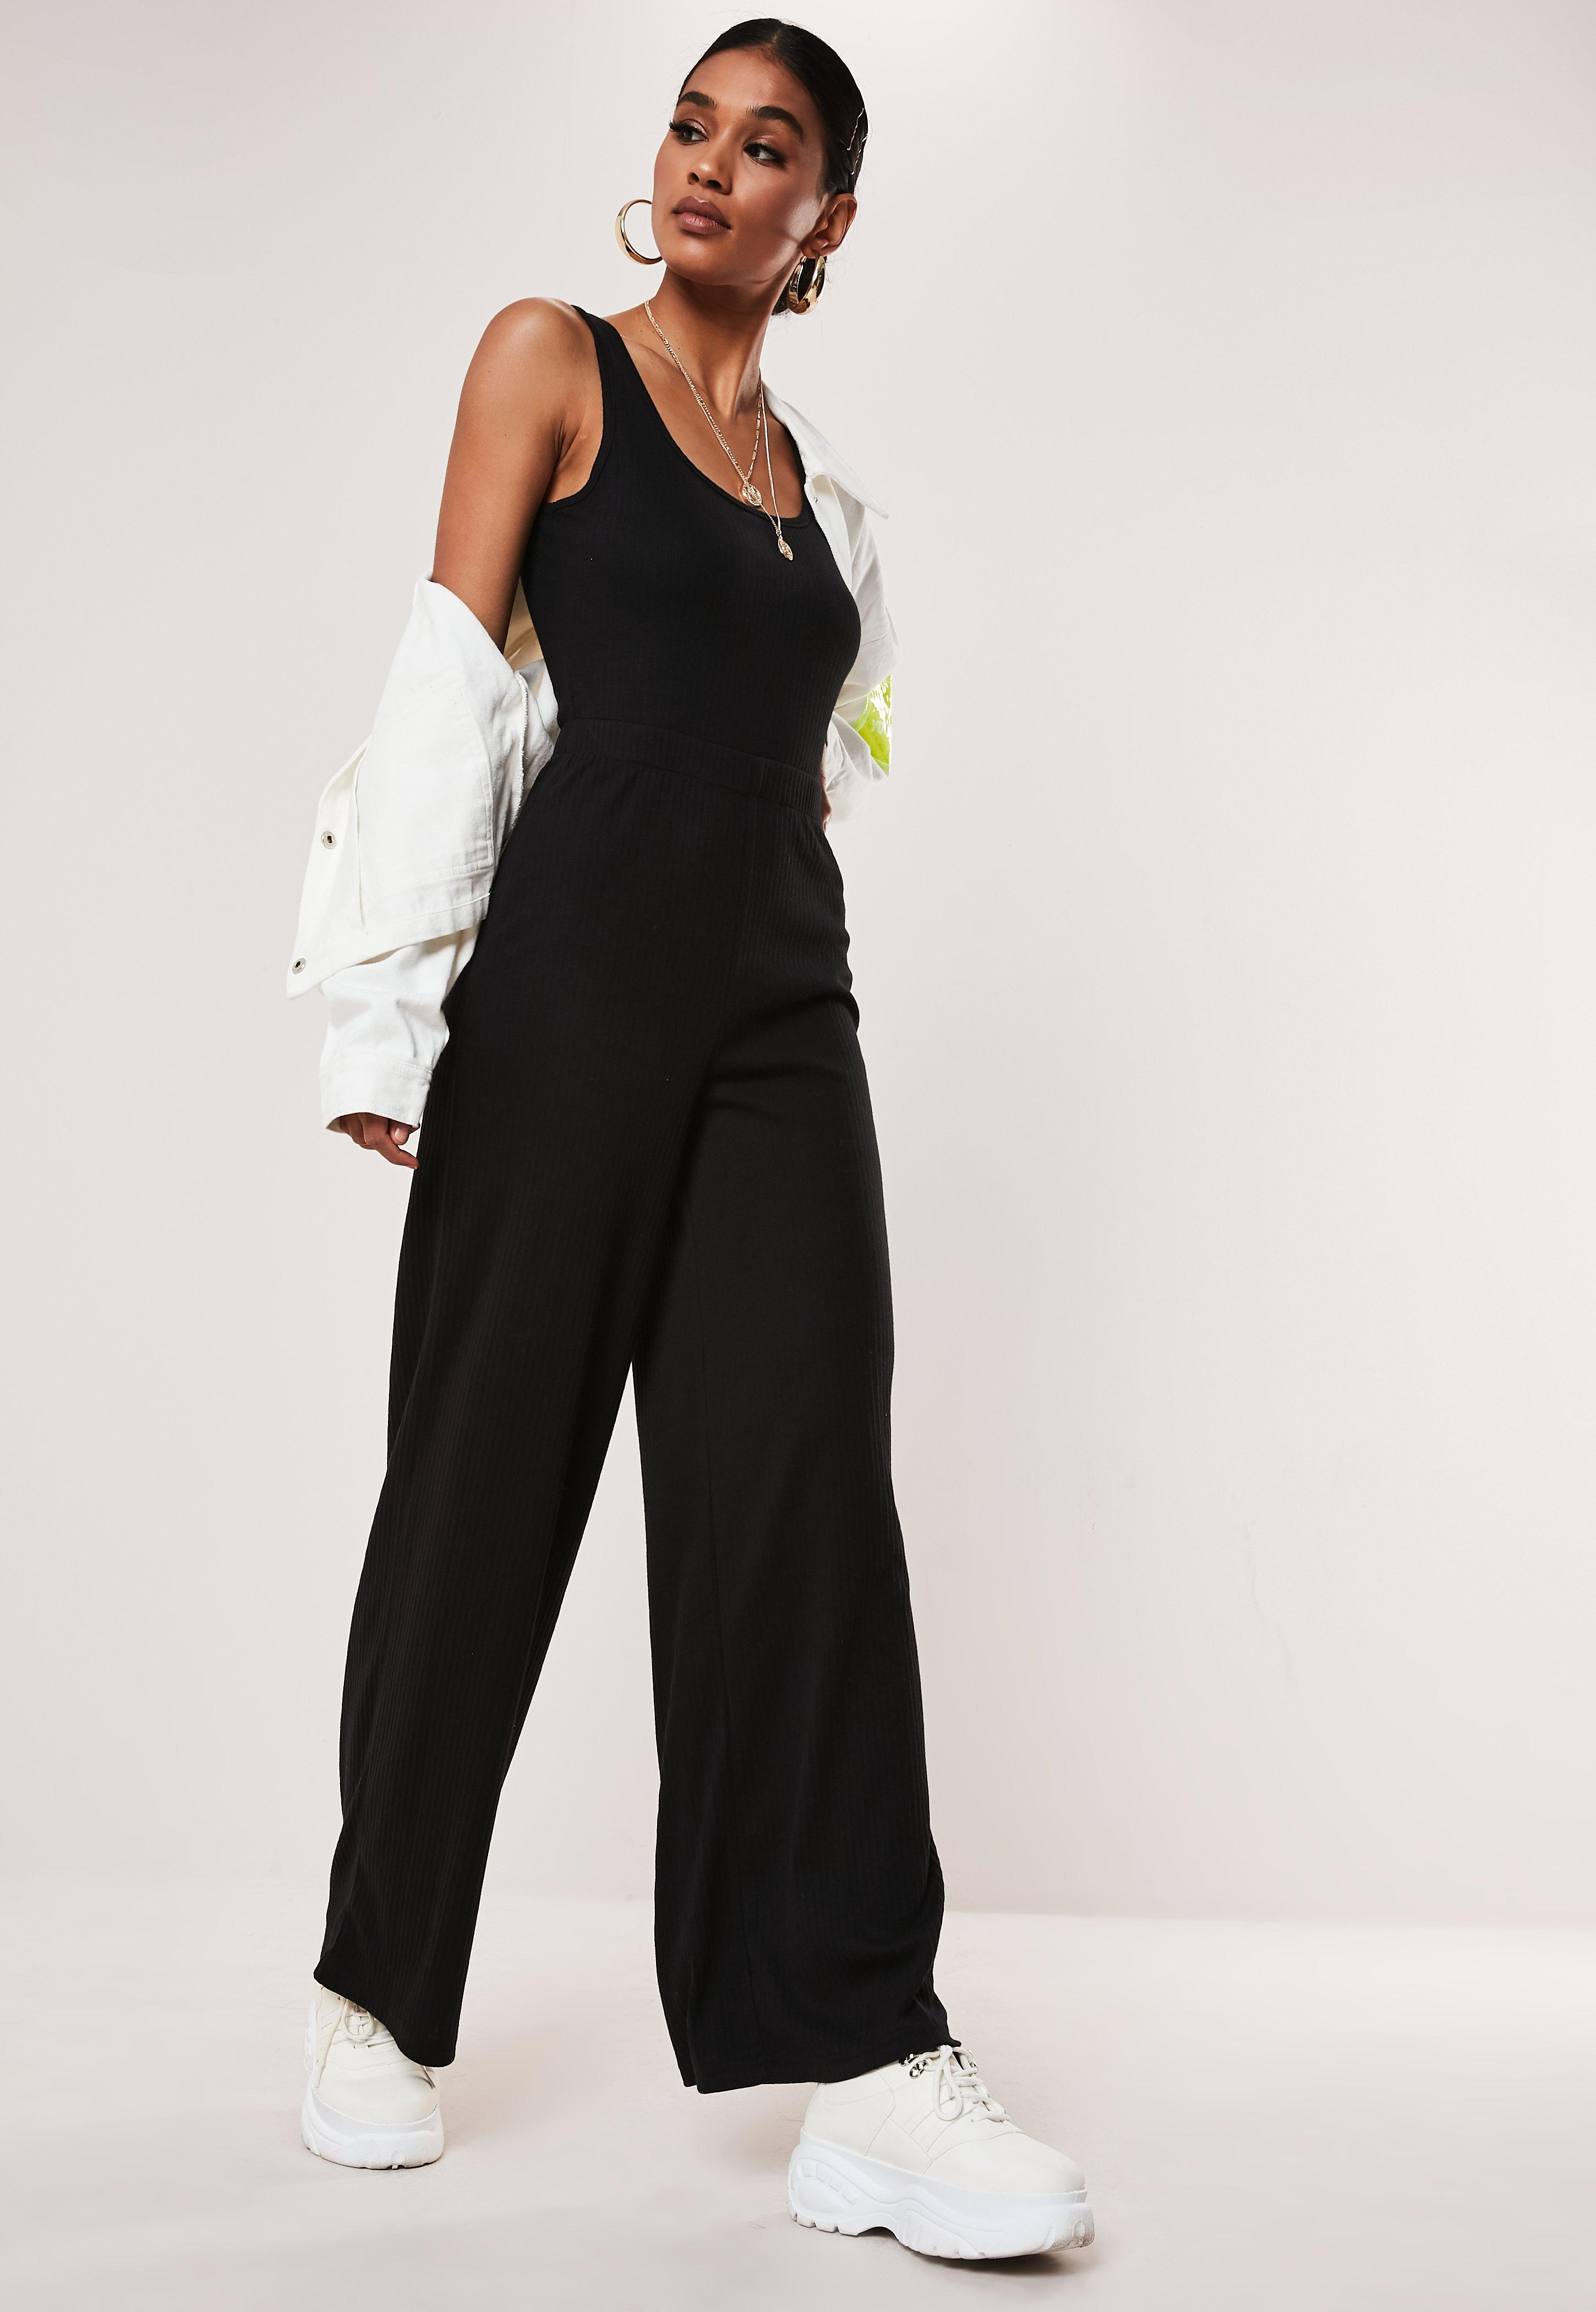 9137de4f87c5 Jumpsuits | Women's Jumpsuits Online - Missguided